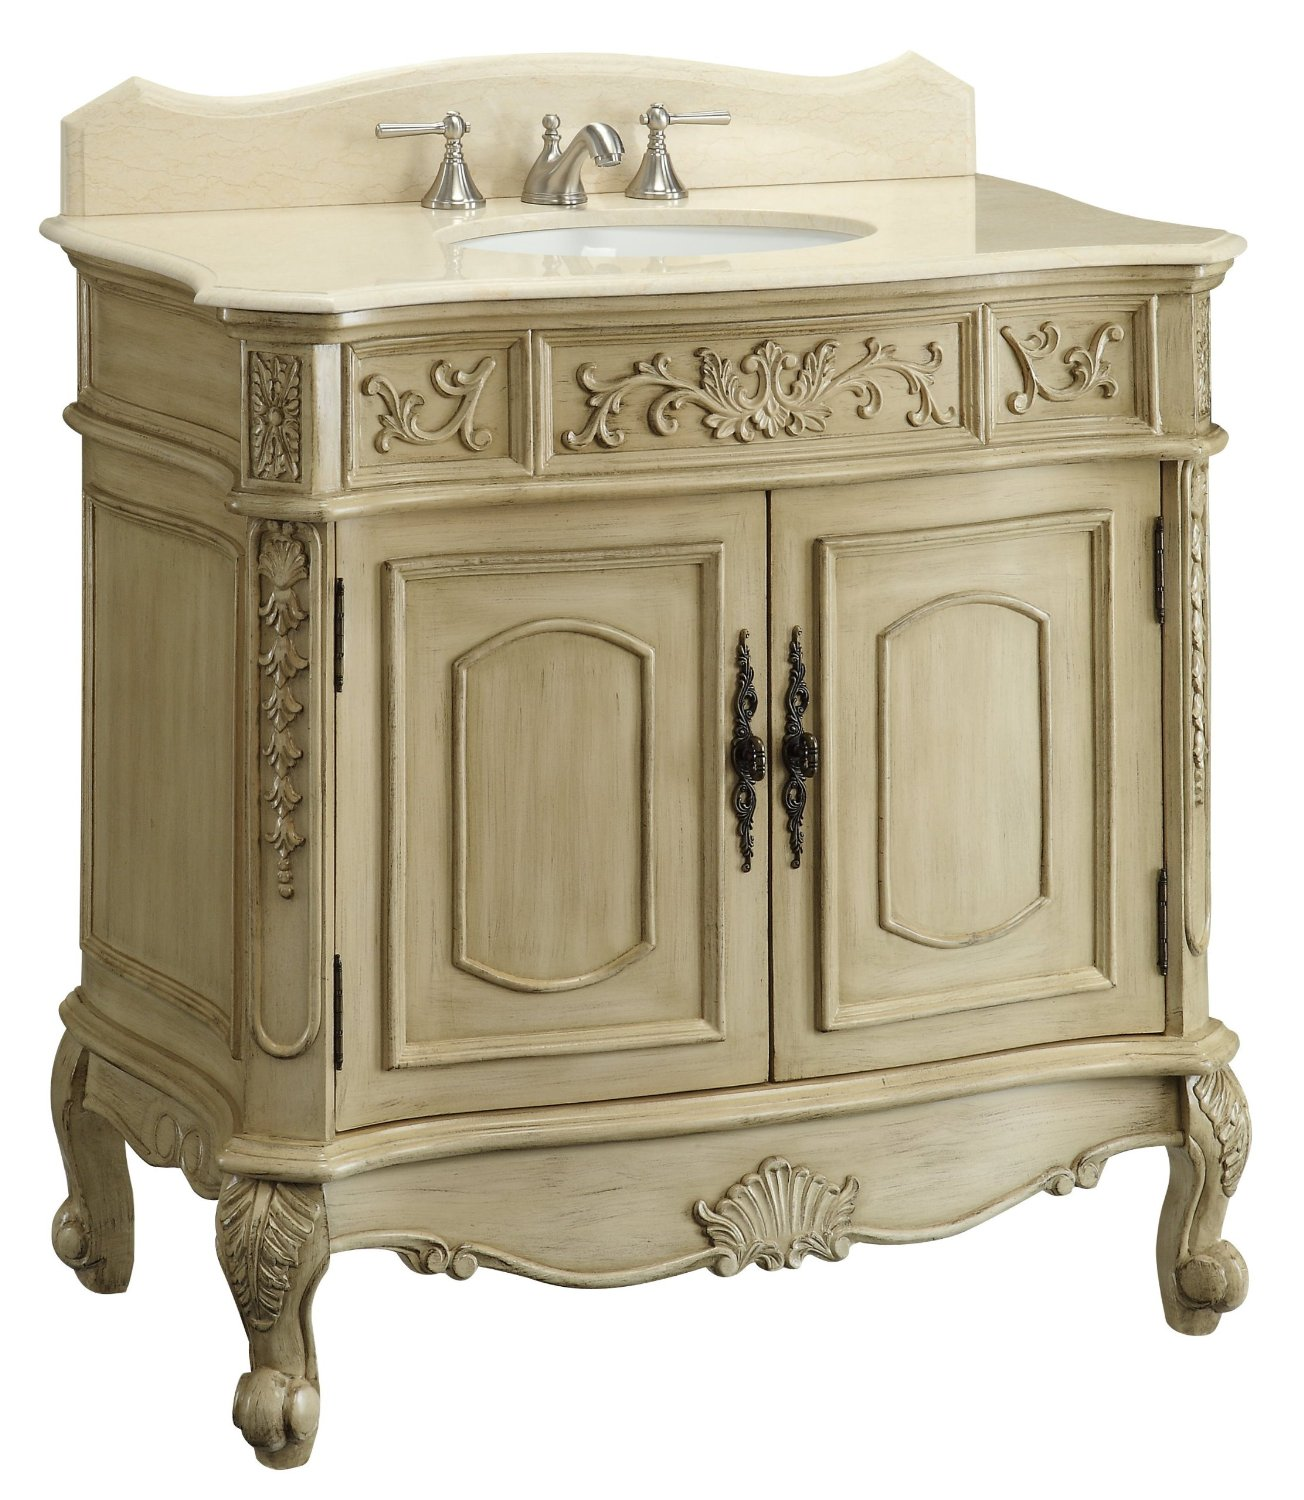 adelina 37 inch unique antique bathroom vanity, white marble